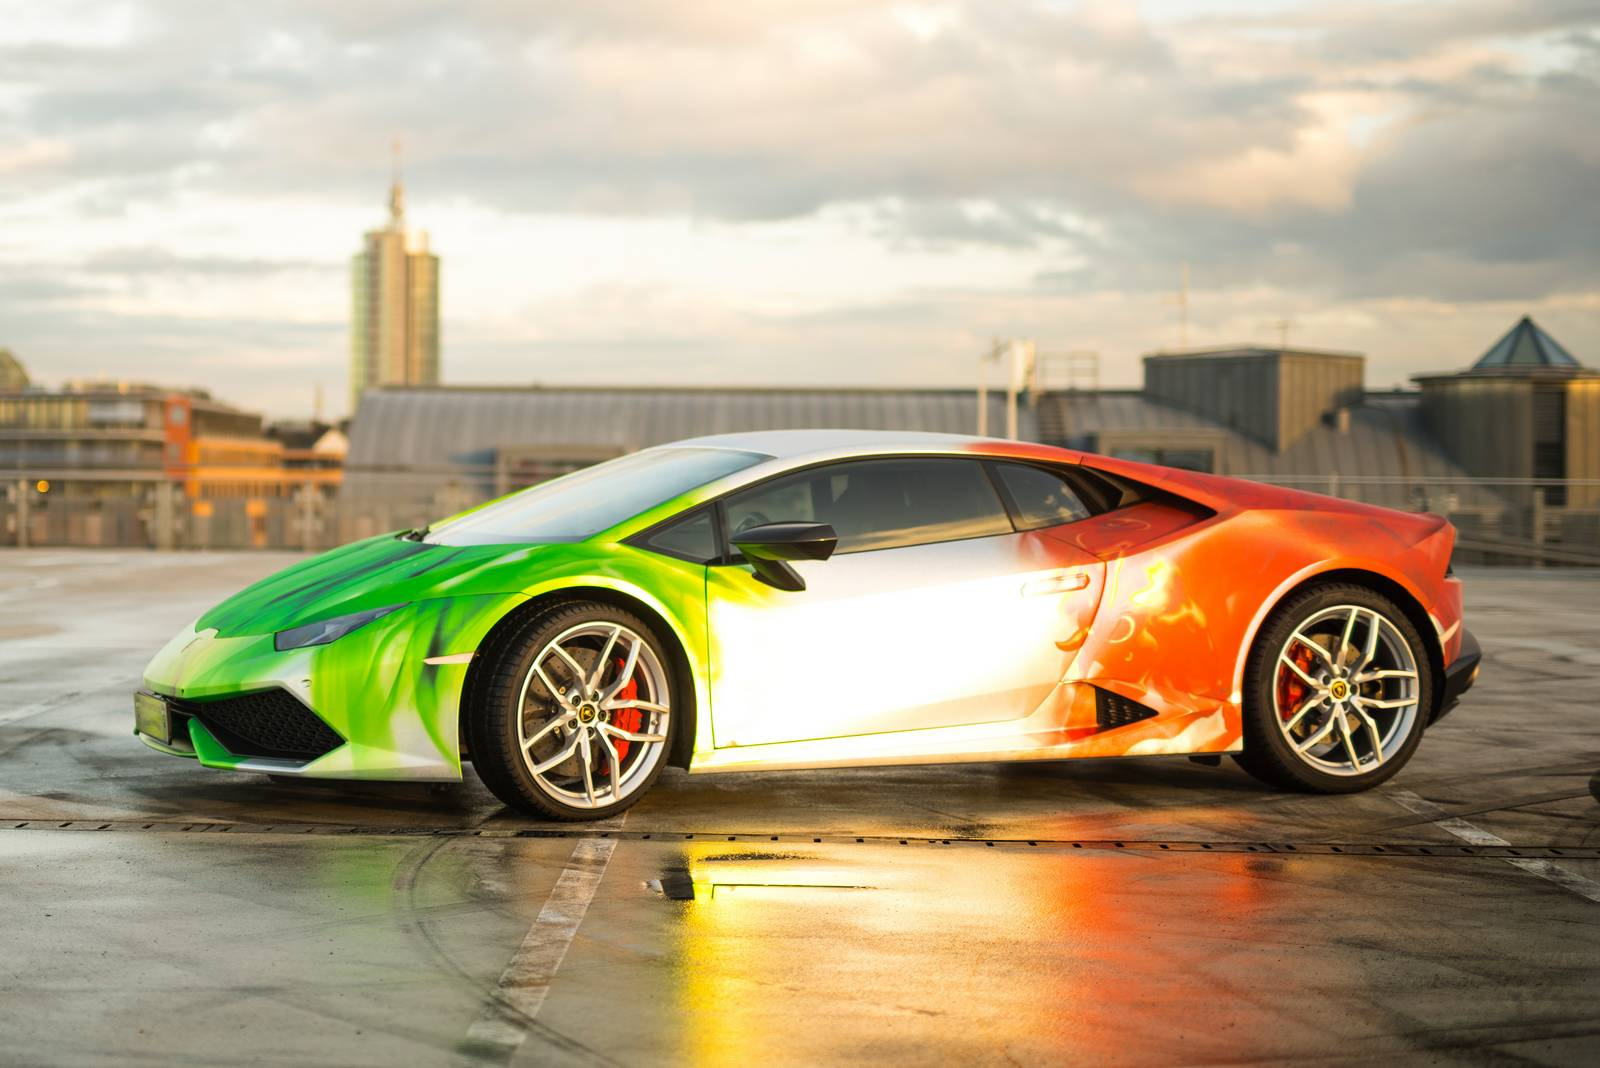 Chrome Car Wrap >> Lamborghini Huracan Wrapped in Tricolor Flames by Print Tech - GTspirit